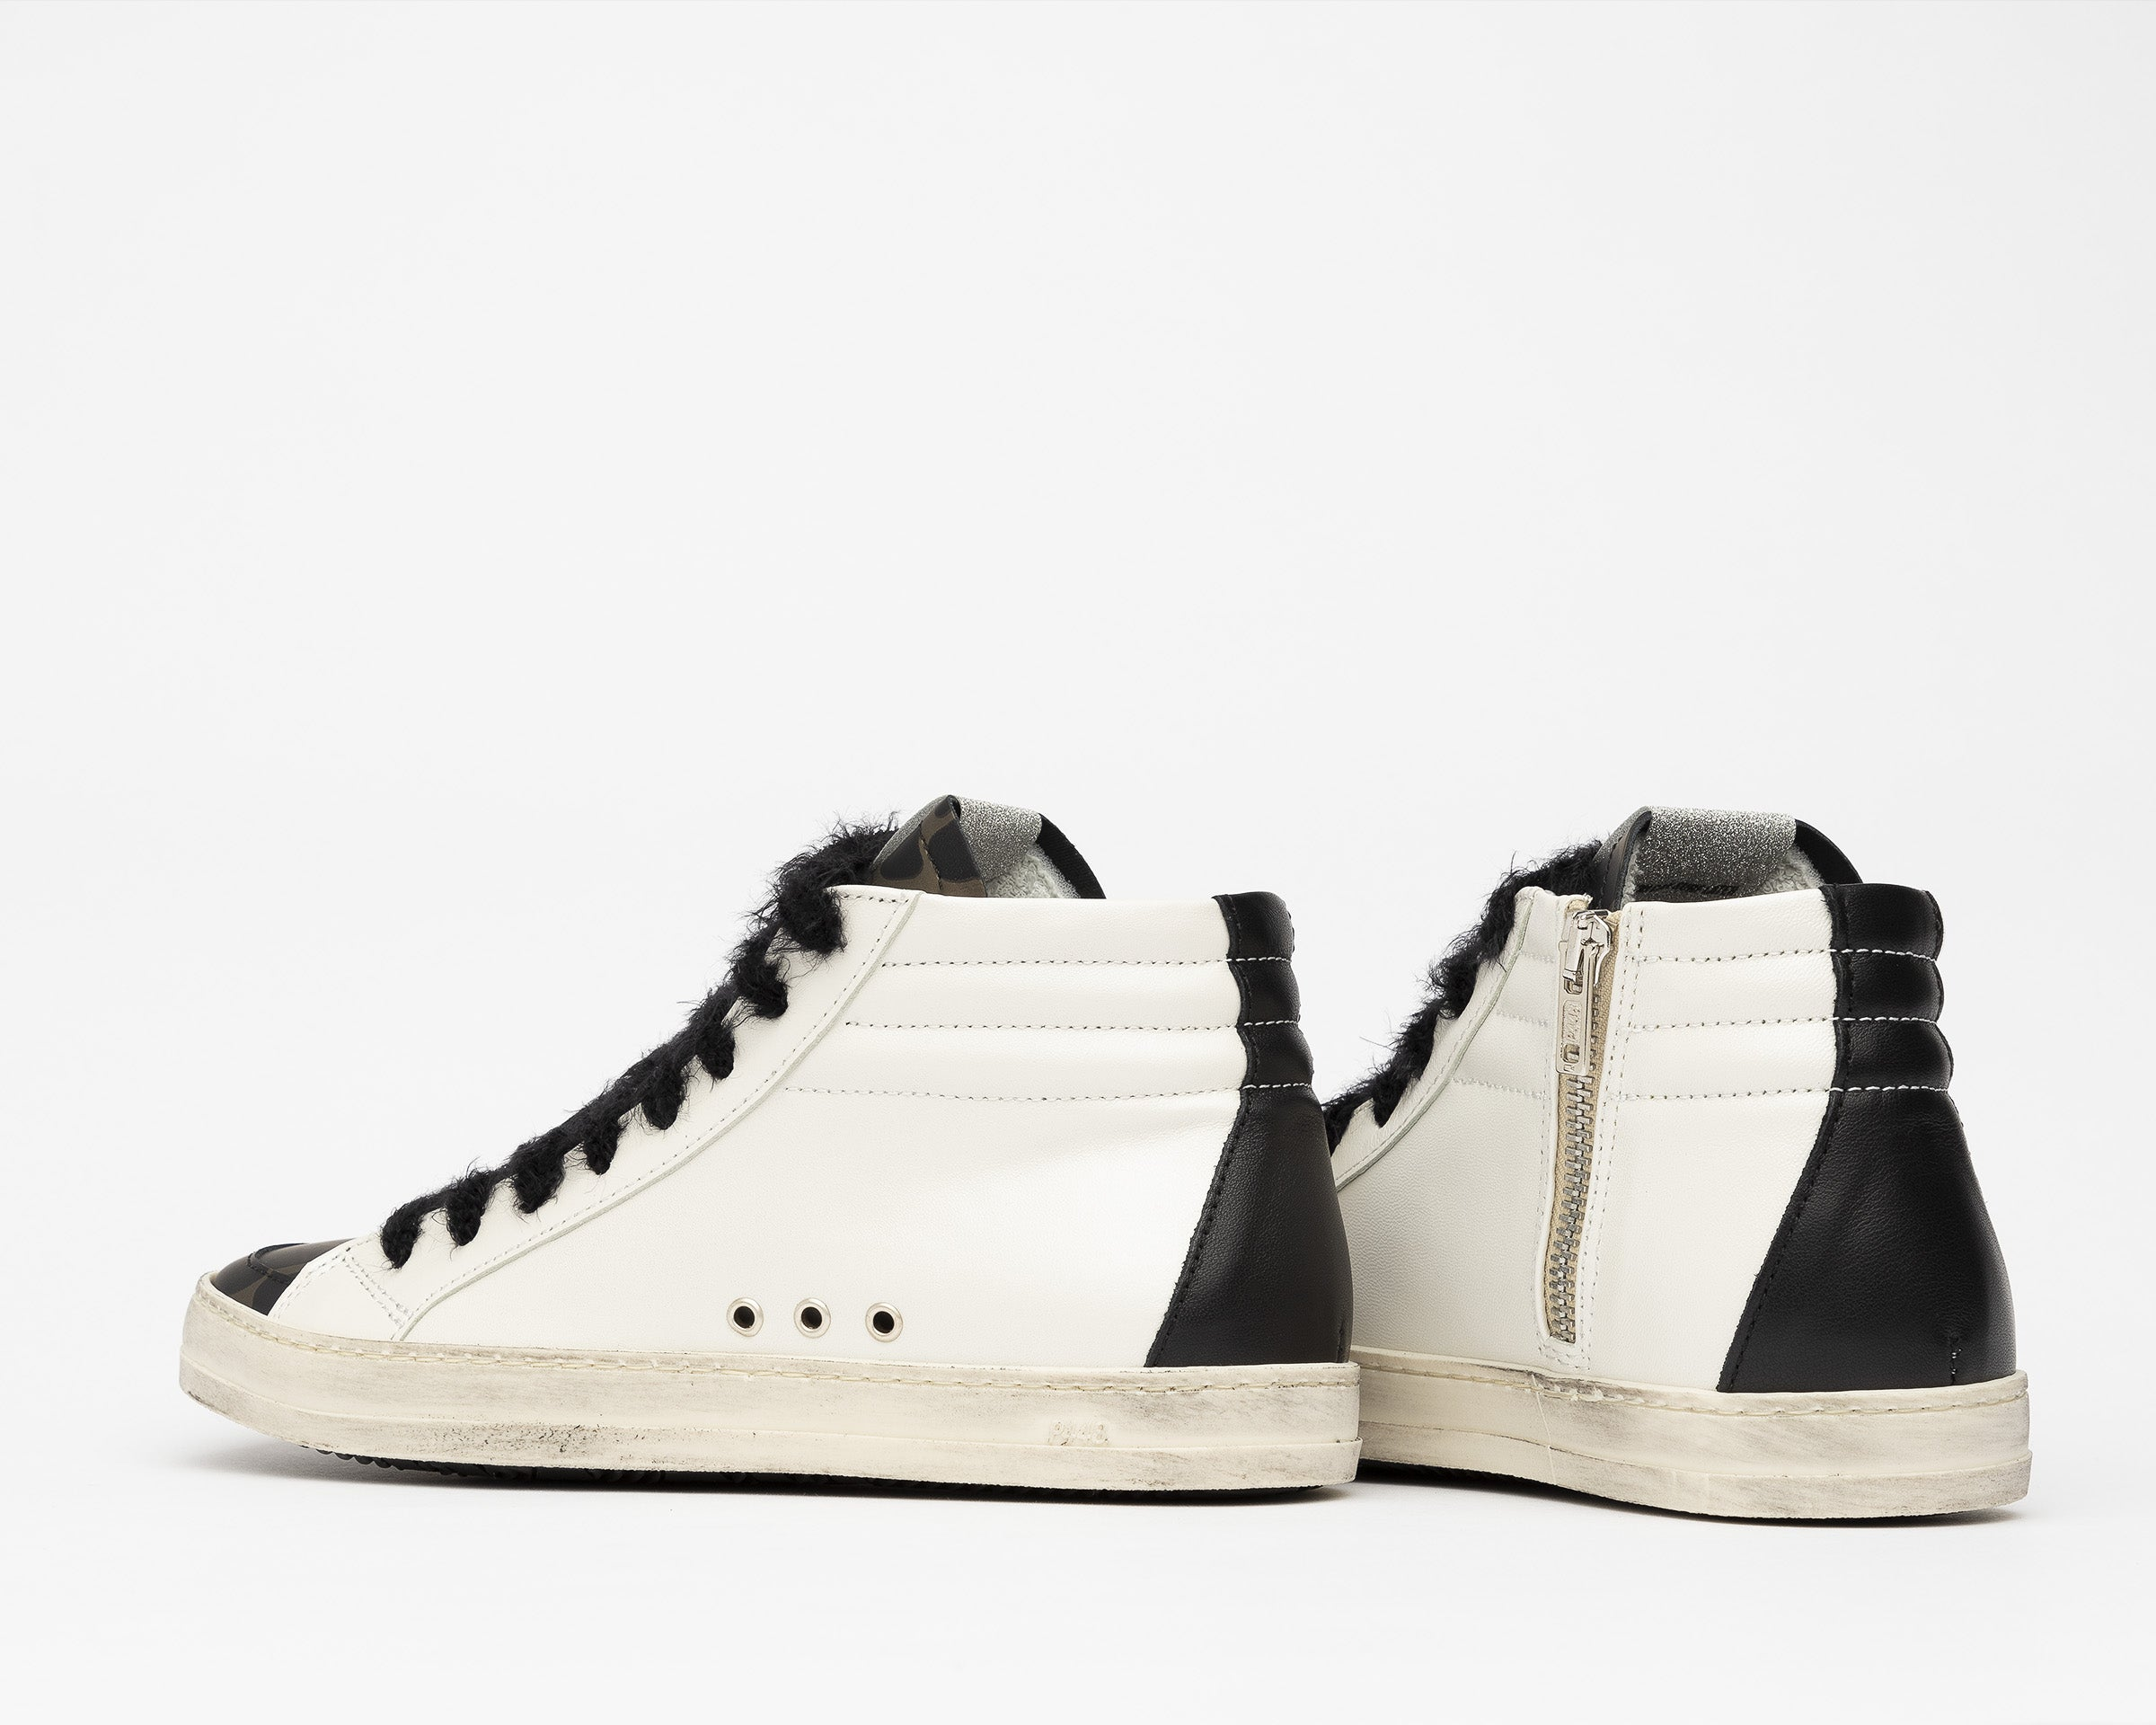 Skate High-Top Sneaker in White/Army Giraffe - Detail 2